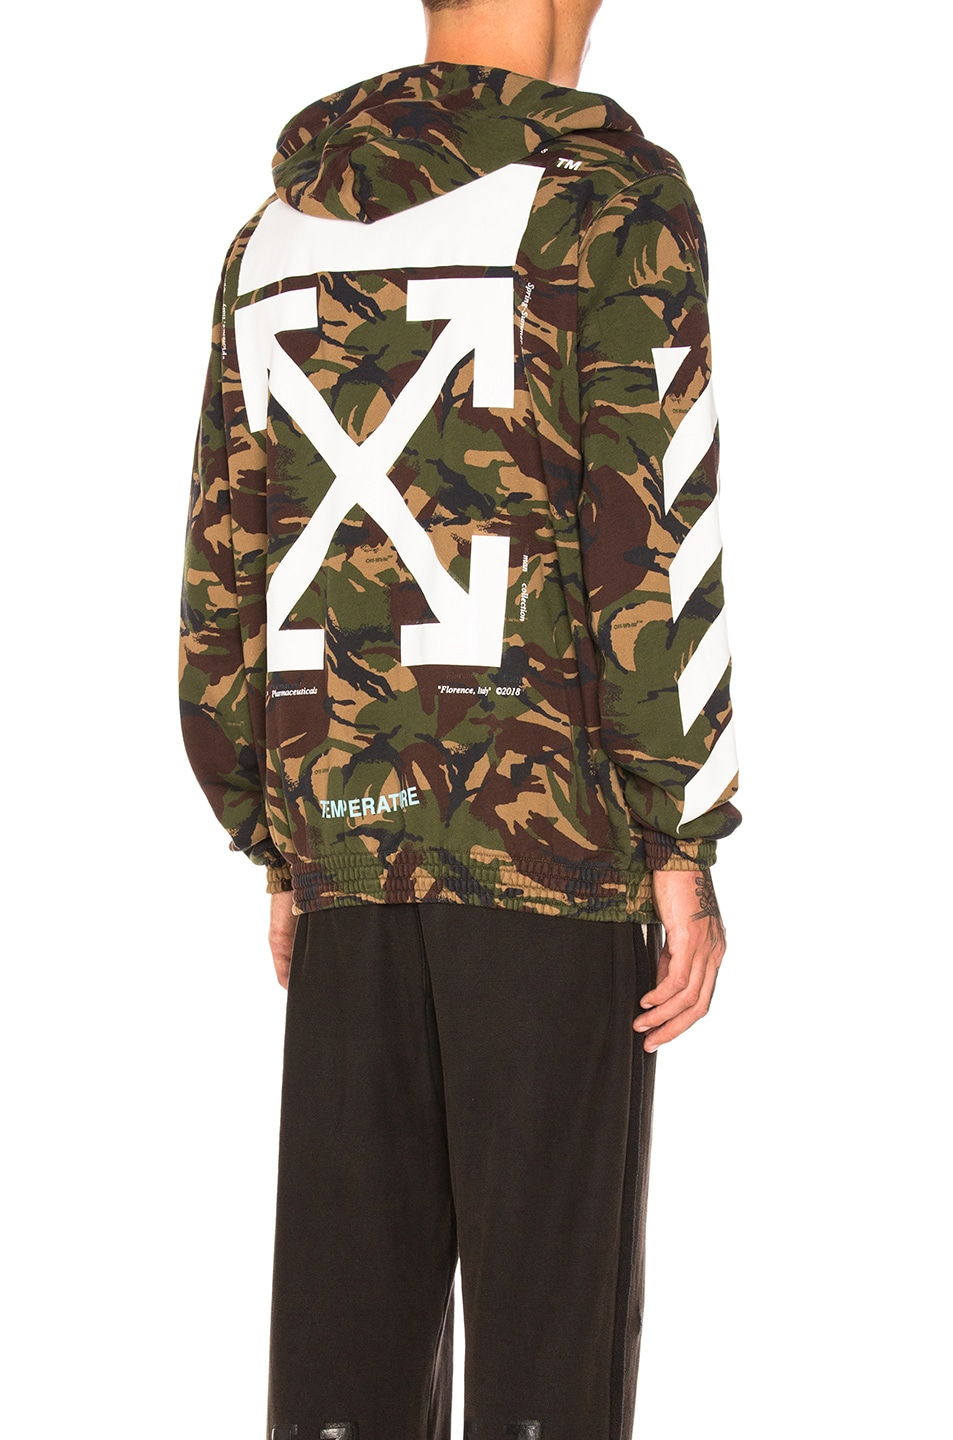 Off White Zipped Hoodie In Camouflage Fwrd